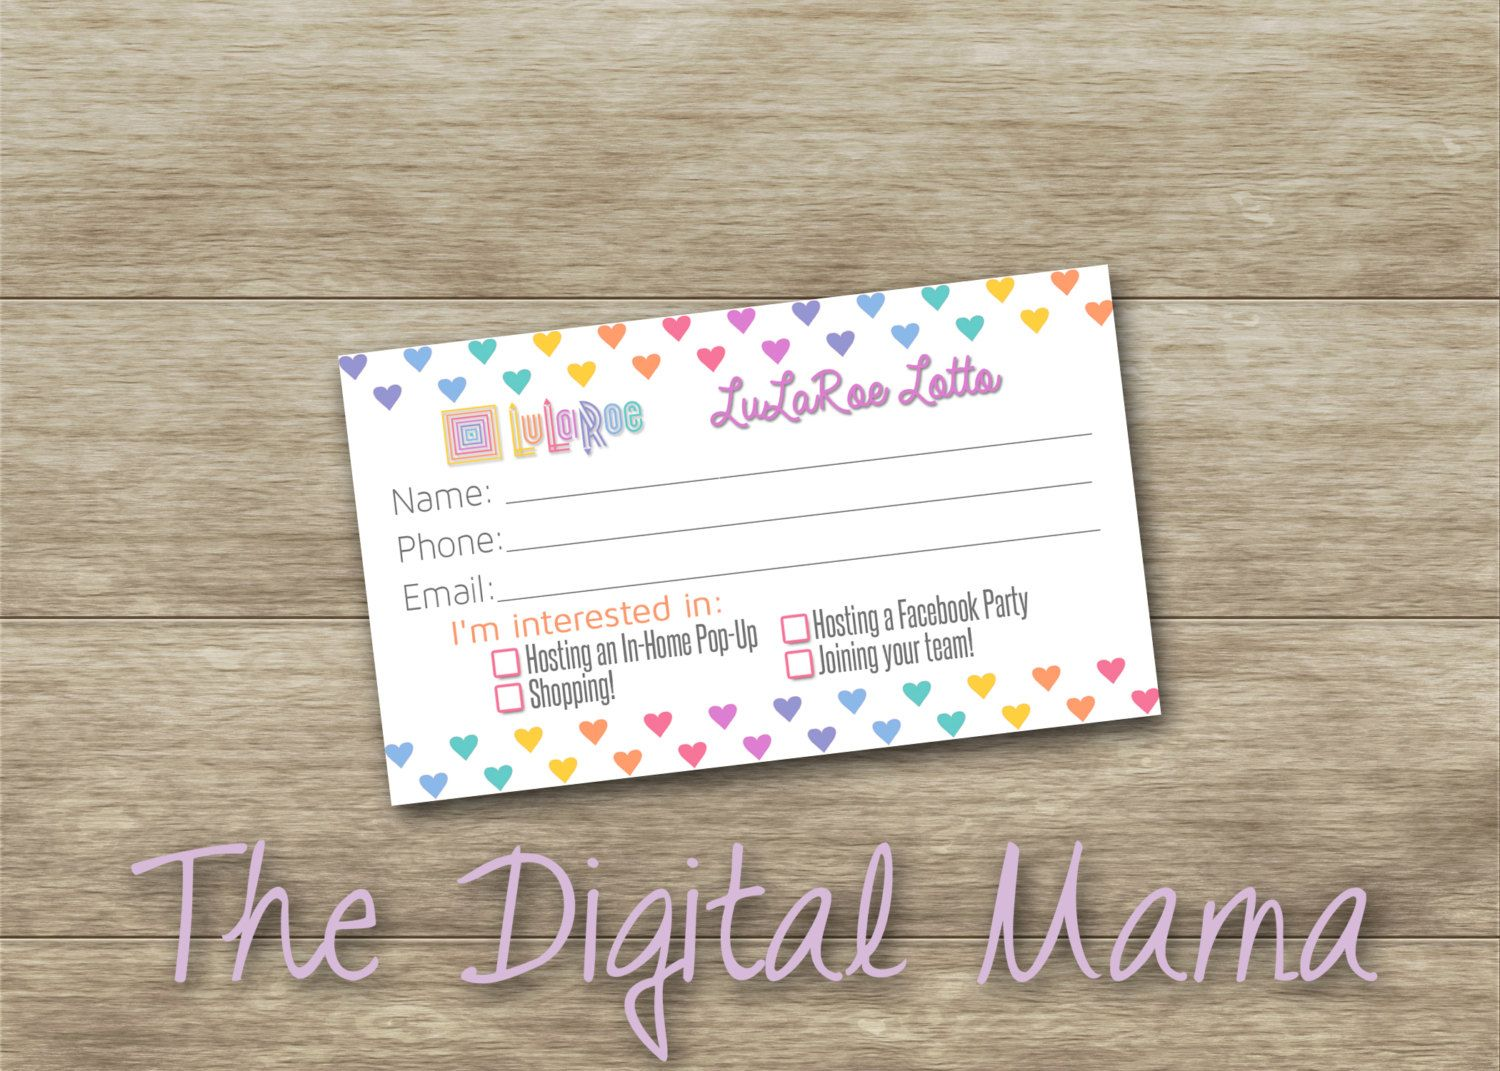 Instant download lularoe customer raffle lottery card lularoe instant download lularoe customer raffle lottery card lularoe enter drawing lularoe business cards magicingreecefo Choice Image